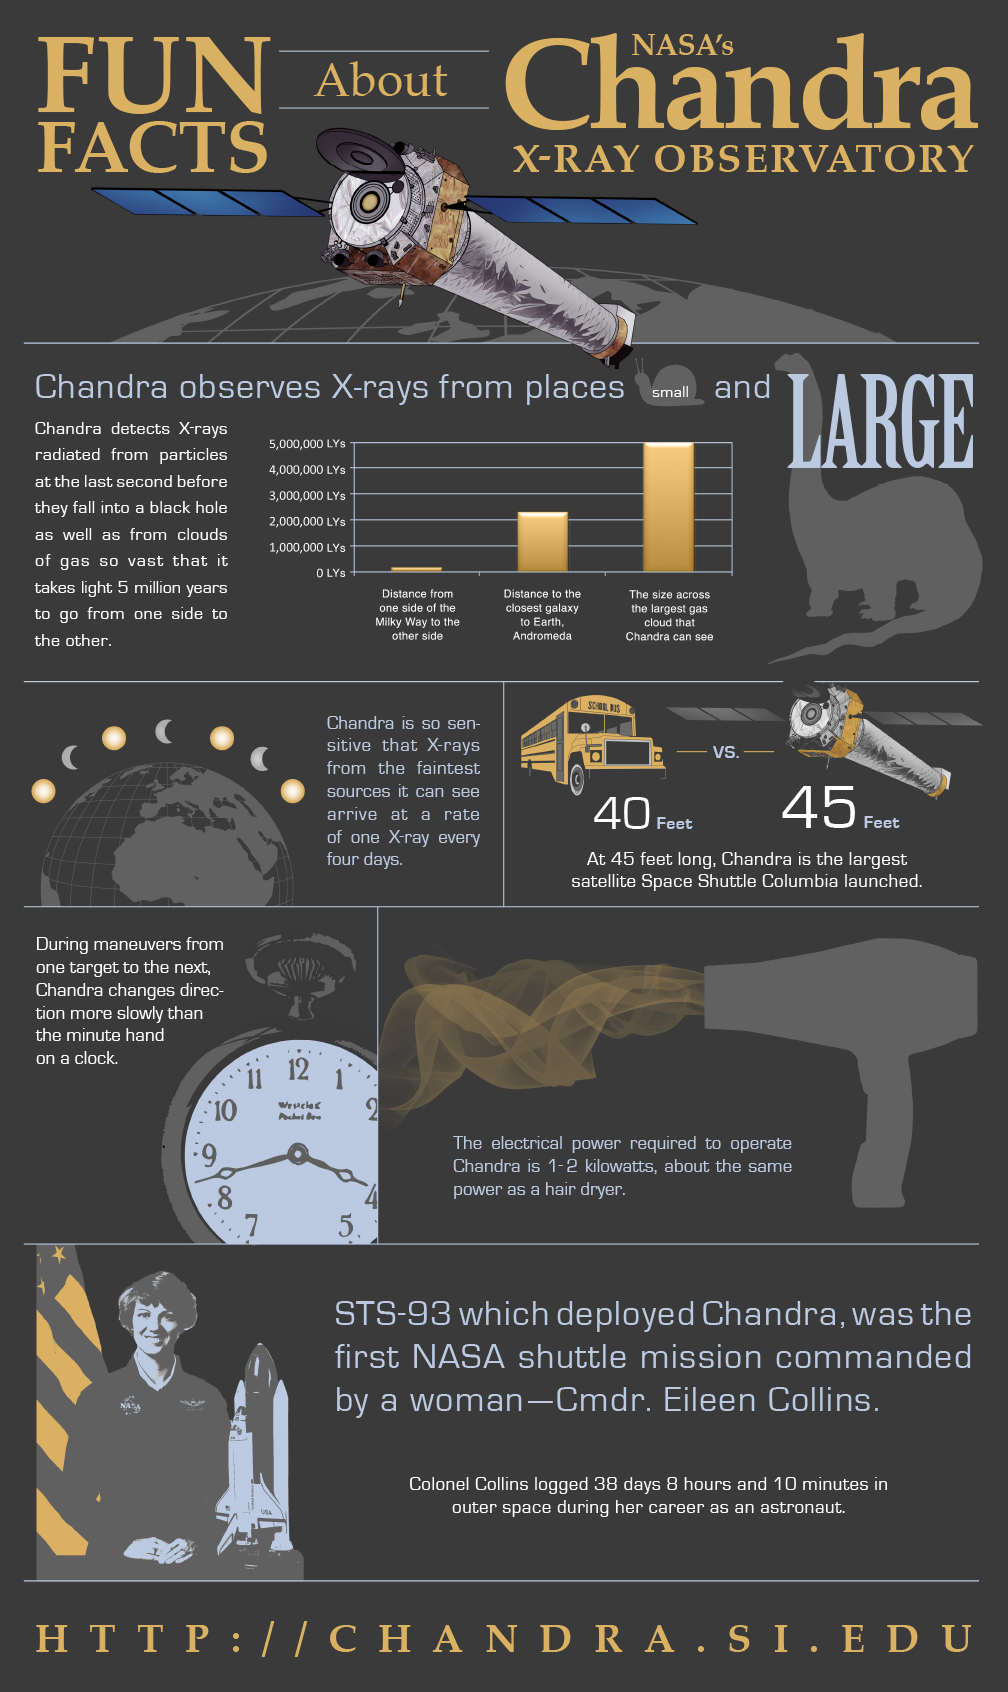 Facts About Chandra Observatory